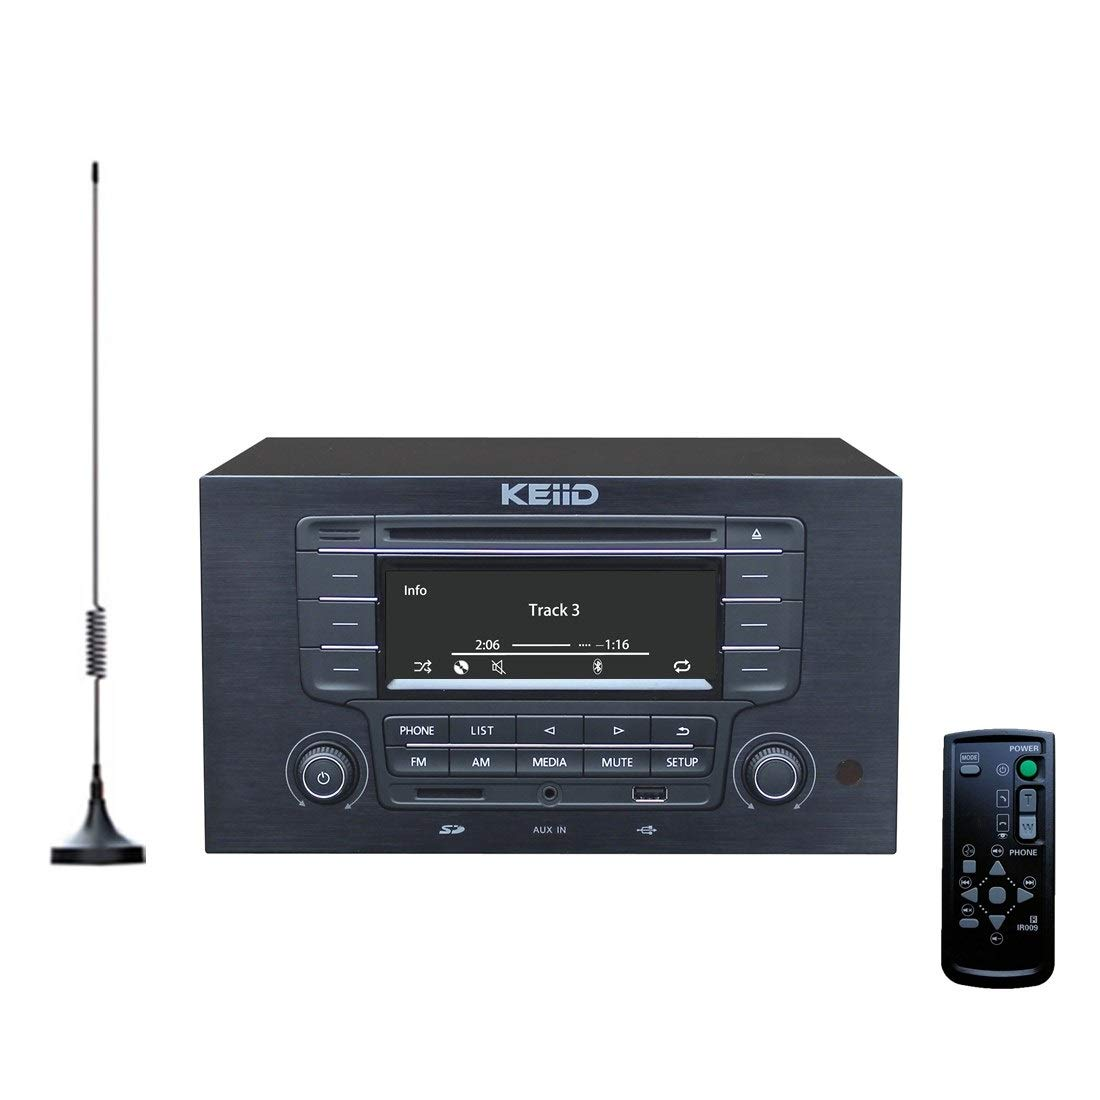 KEiiD CD Player with 4-Way 4x20W Amplifier 4.0 Output (No Speakers Inside) ,Built-in Bluetooth Receiver USB SD MP3 3.5mm AUX Line-in Remote Control LCD Display, RCA and 3.5mm Headphone Jack Output by KEiiD